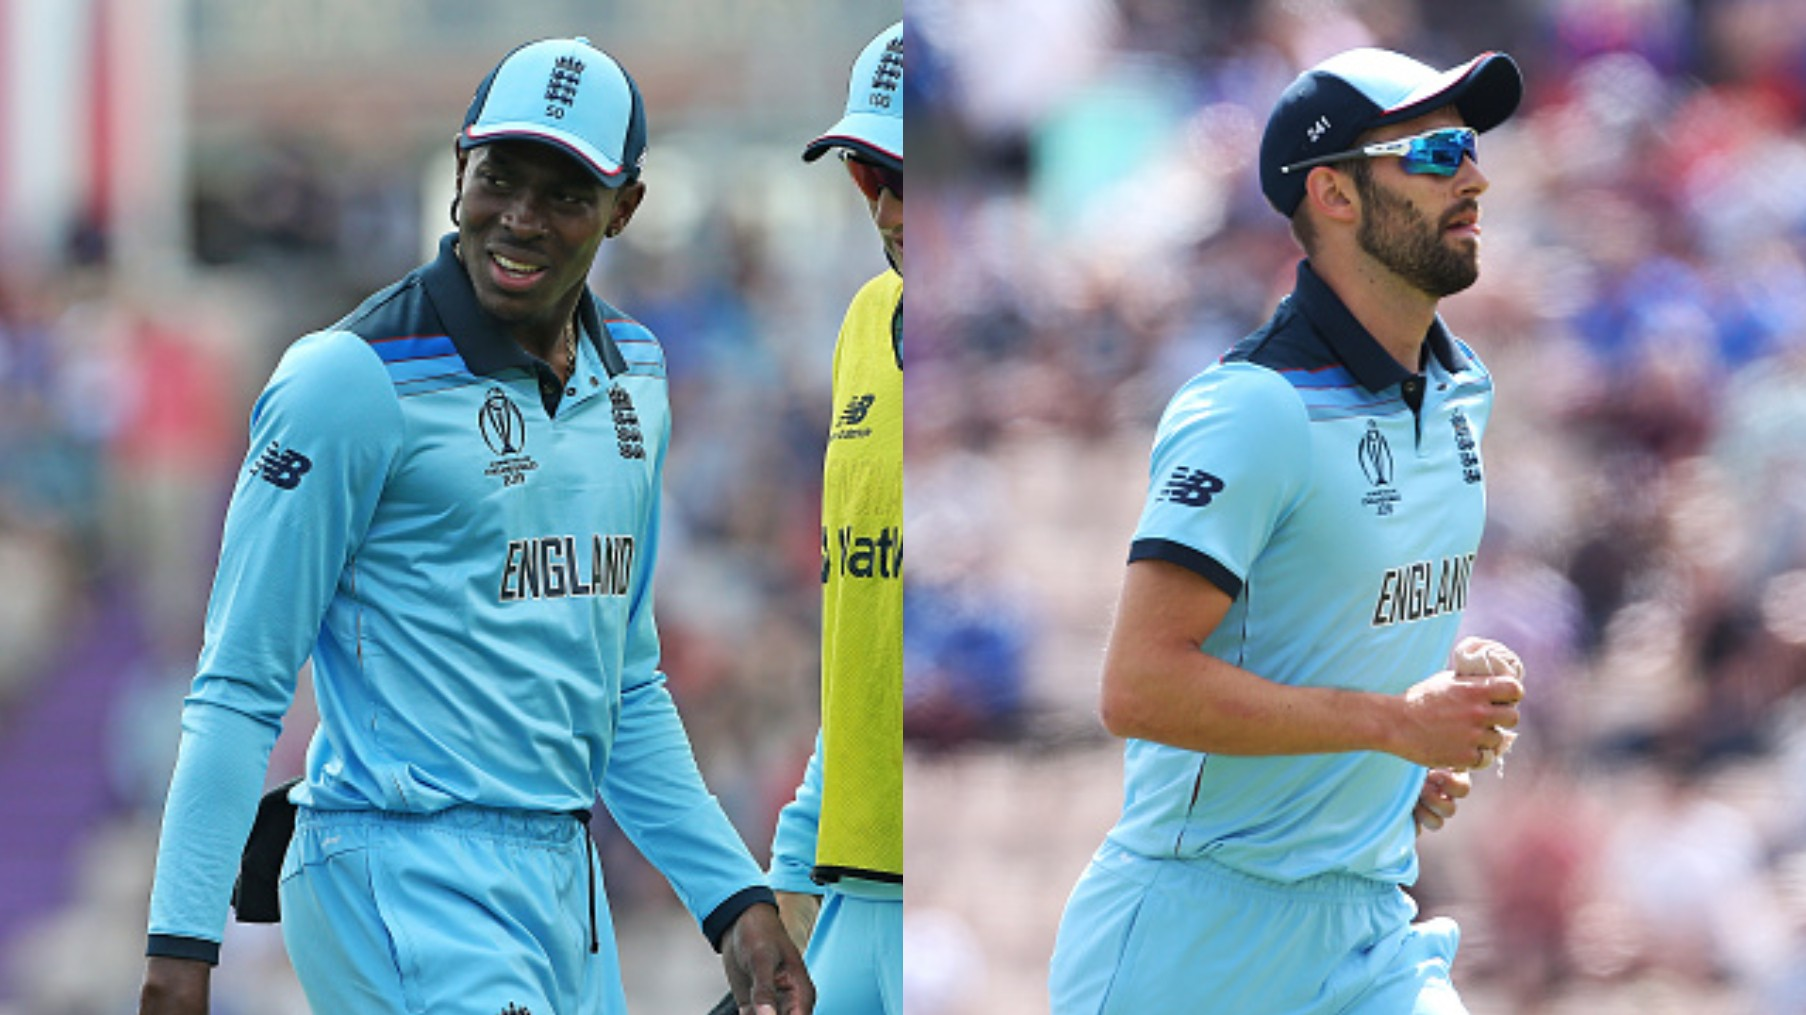 CWC 2019: England's injury woes increase as Mark Wood and Jofra Archer leave field during Australia warm-up match